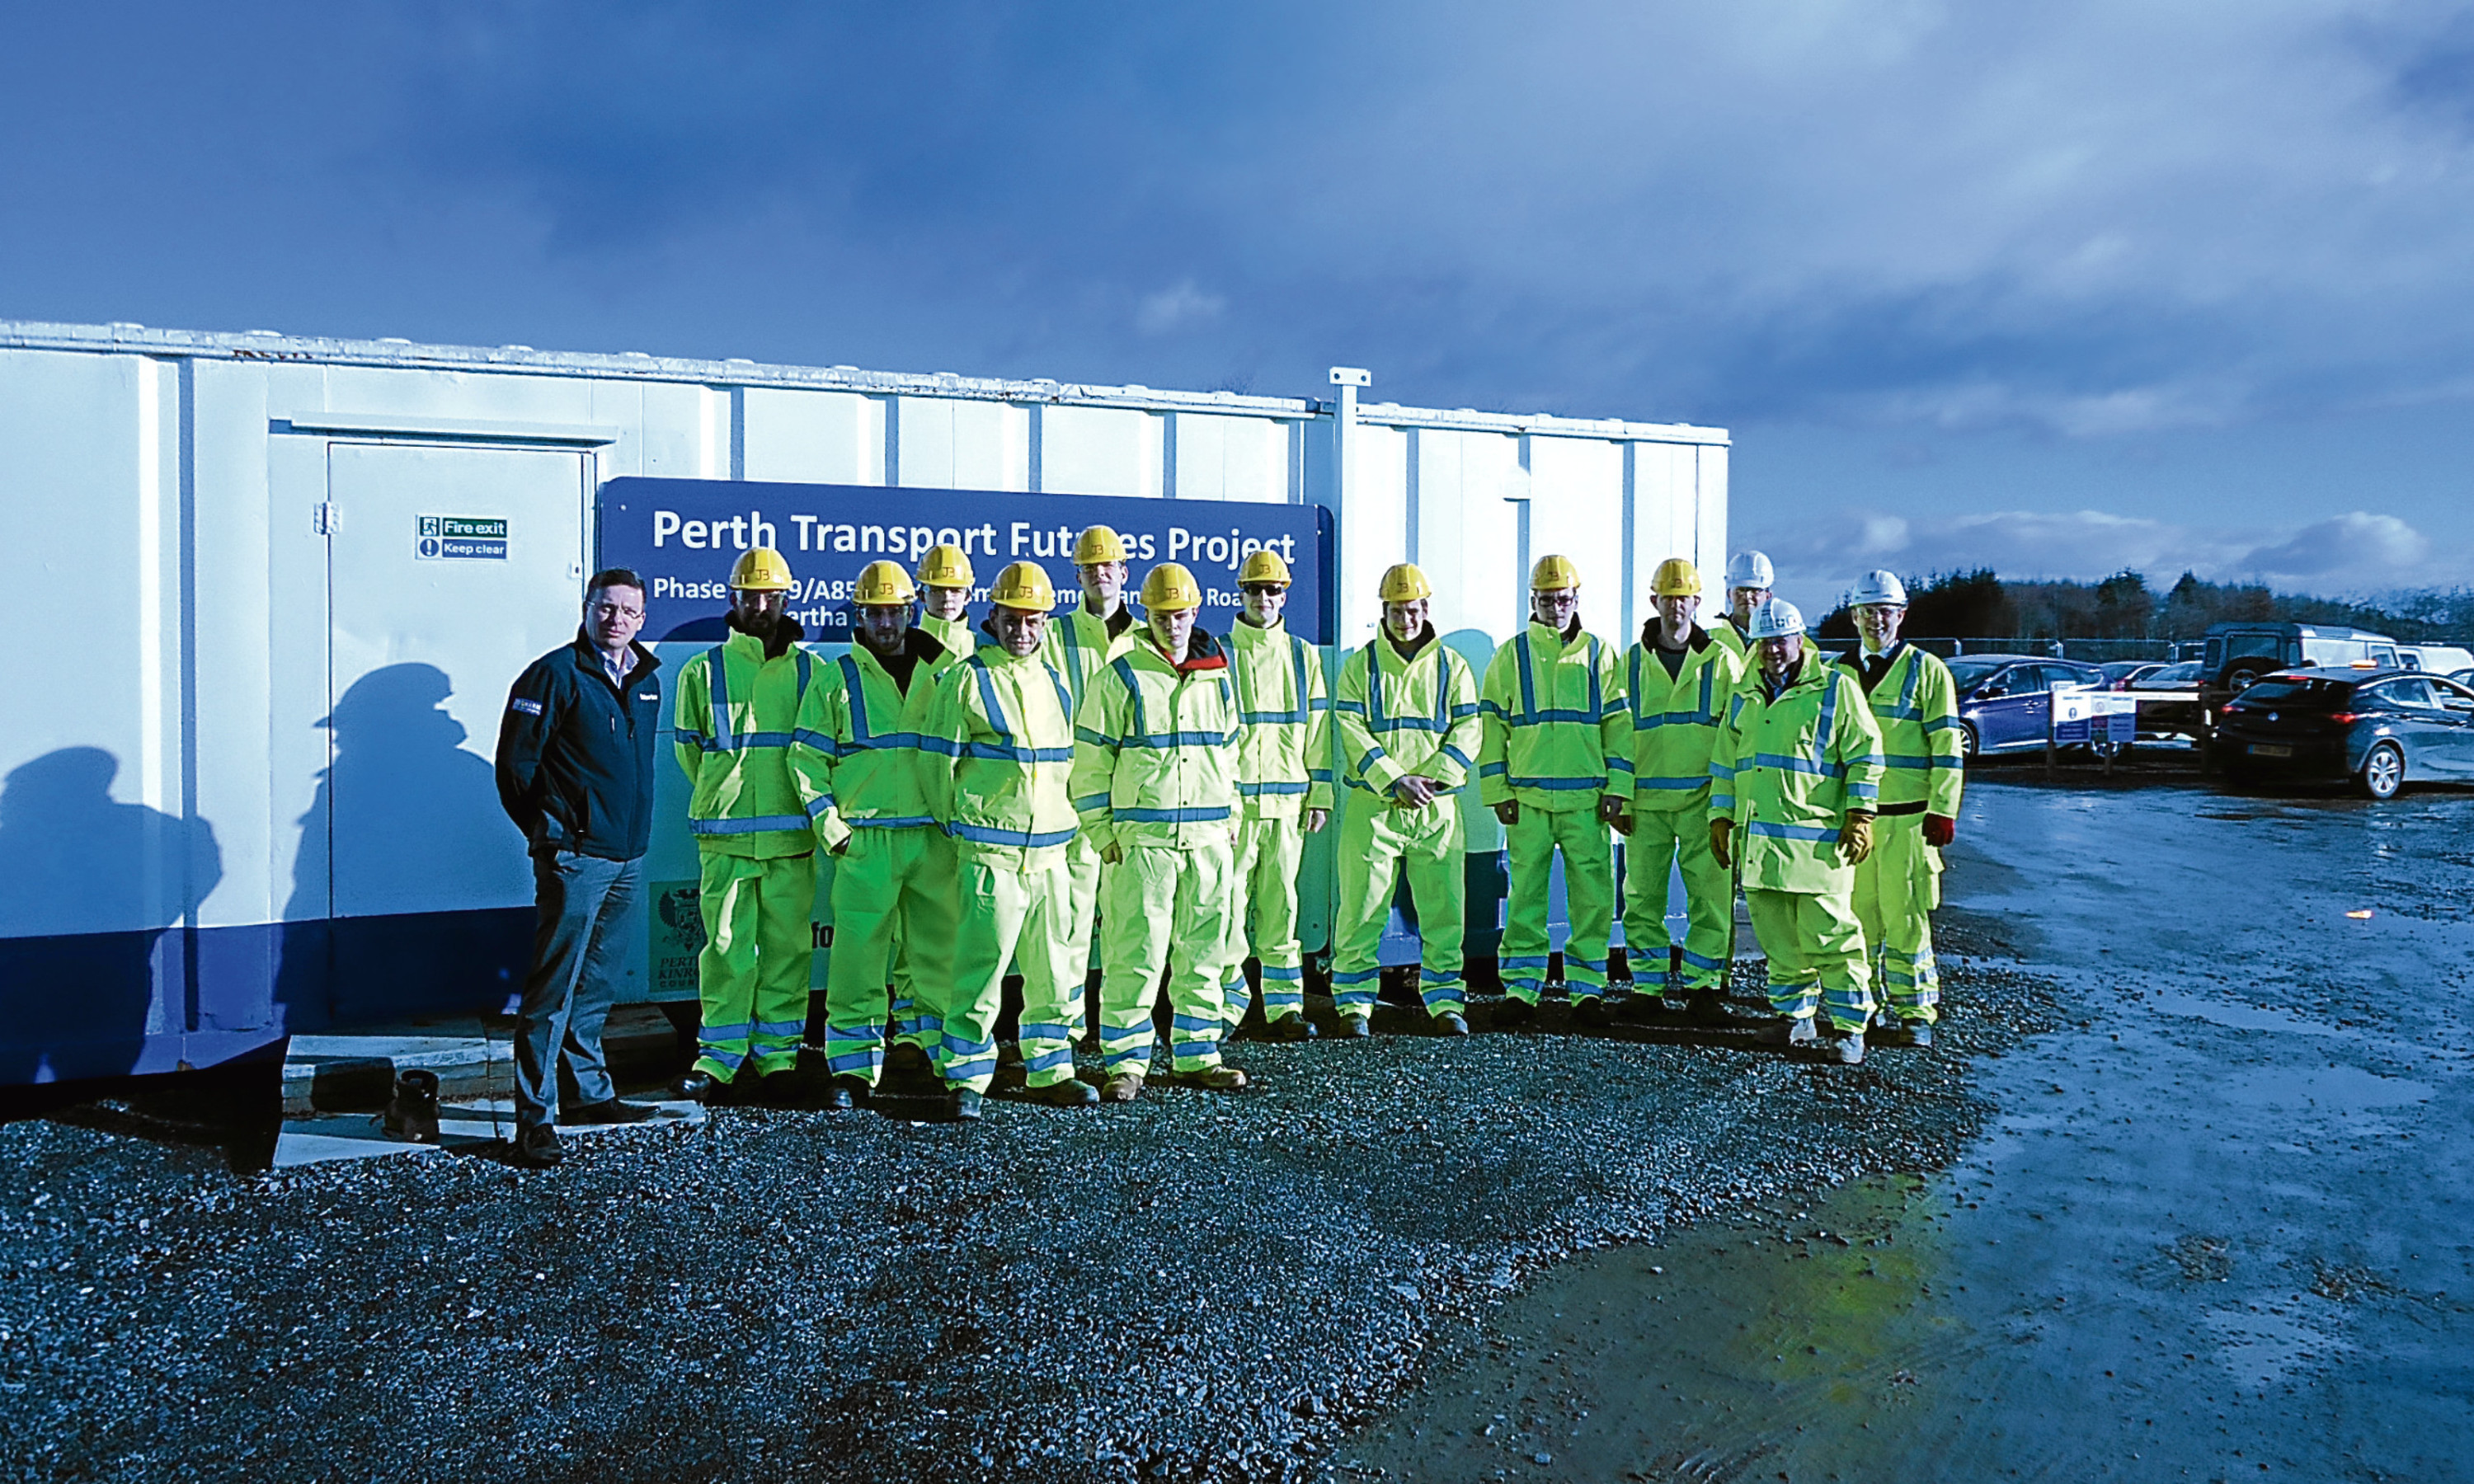 The trainees joining Balfour Beatty at the Perth Transport Futures Project